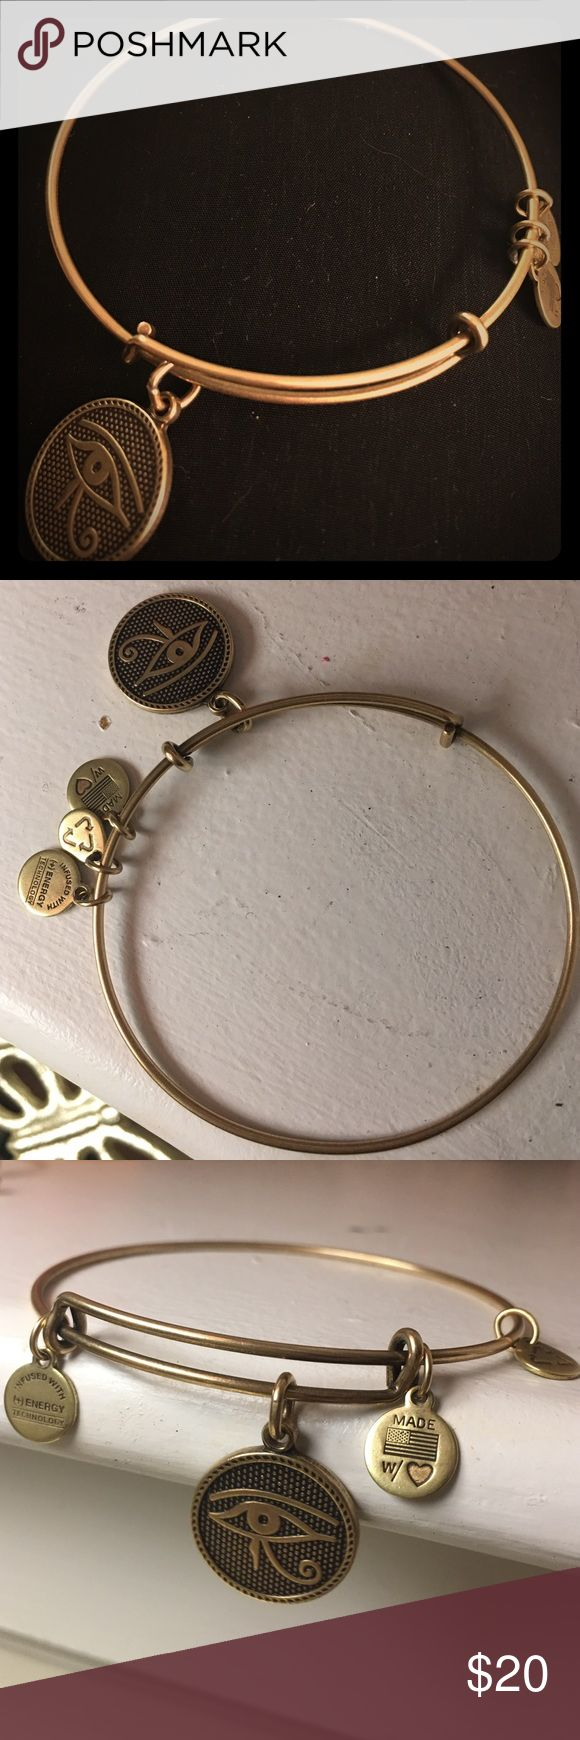 Alex & Ani EYE OF HORUS Russian Gold Charm Bangle Alex and Ani EYE OF HORUS Russian Gold Charm Bangle worn a few times in perfect condition Alex & Ani Jewelry Bracelets